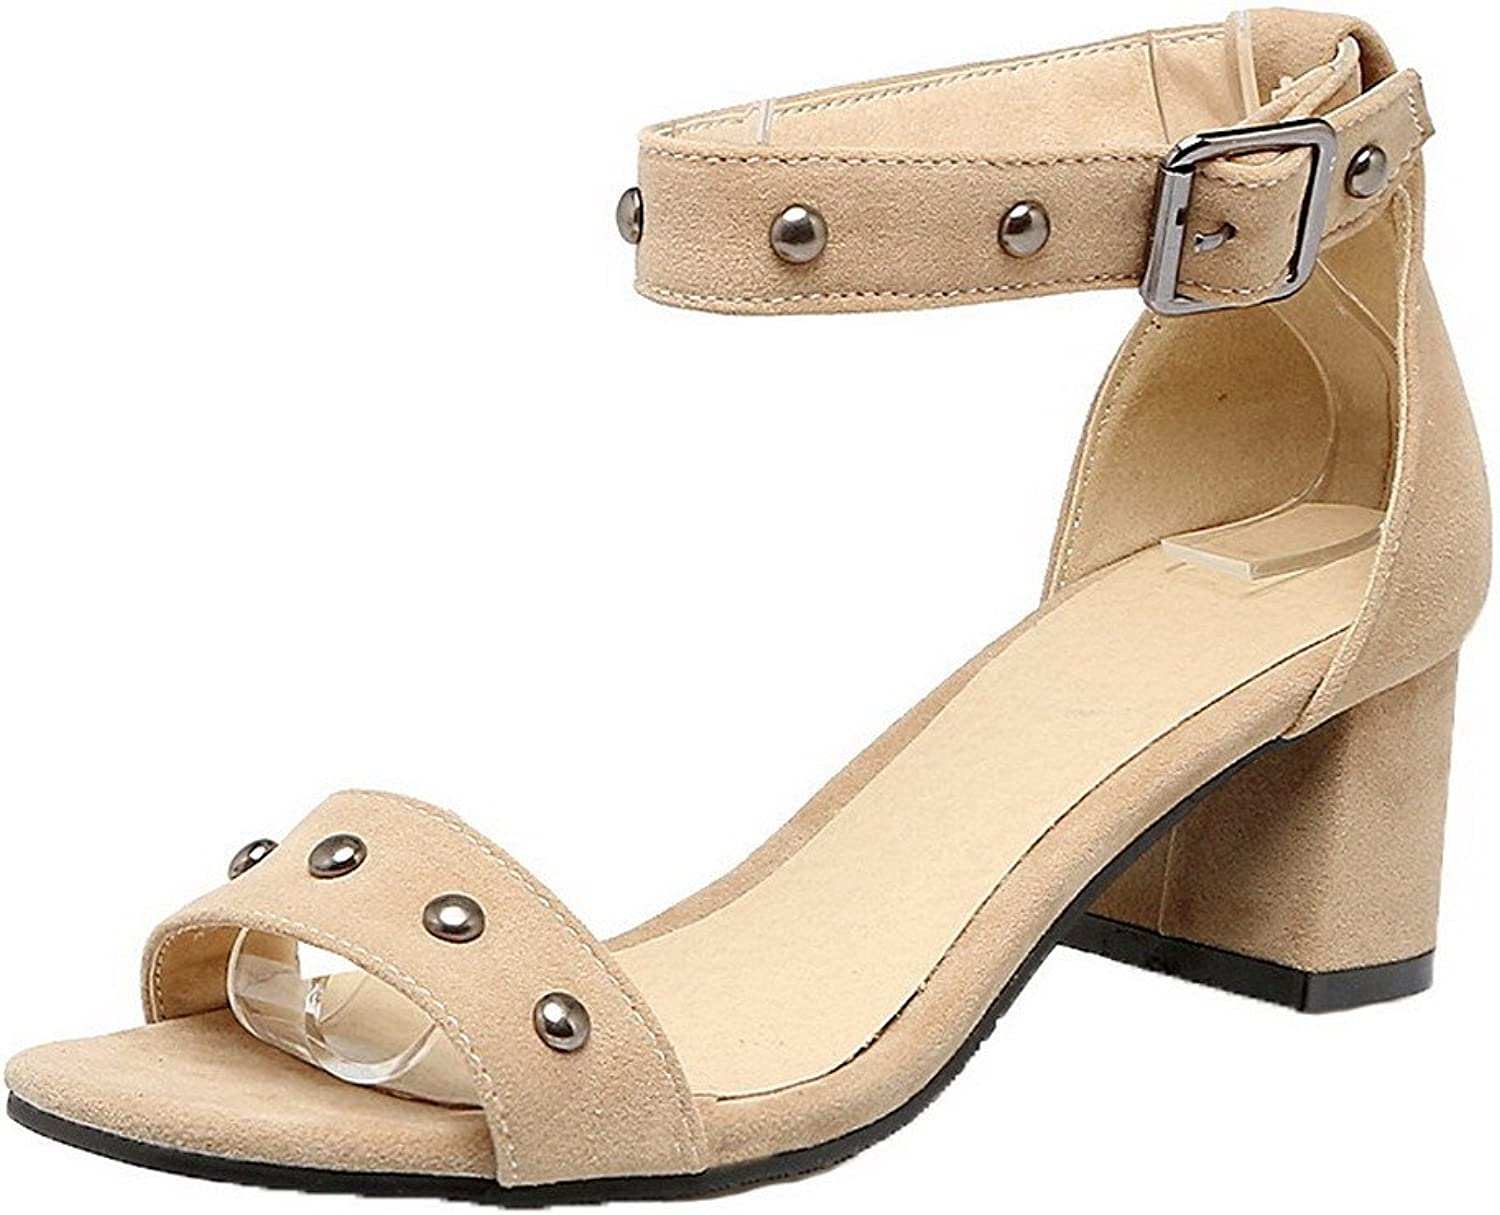 WeiPoot Women's Open-Toe Frosted Kitten-Heels Buckle Solid Sandals, EGHLH005628